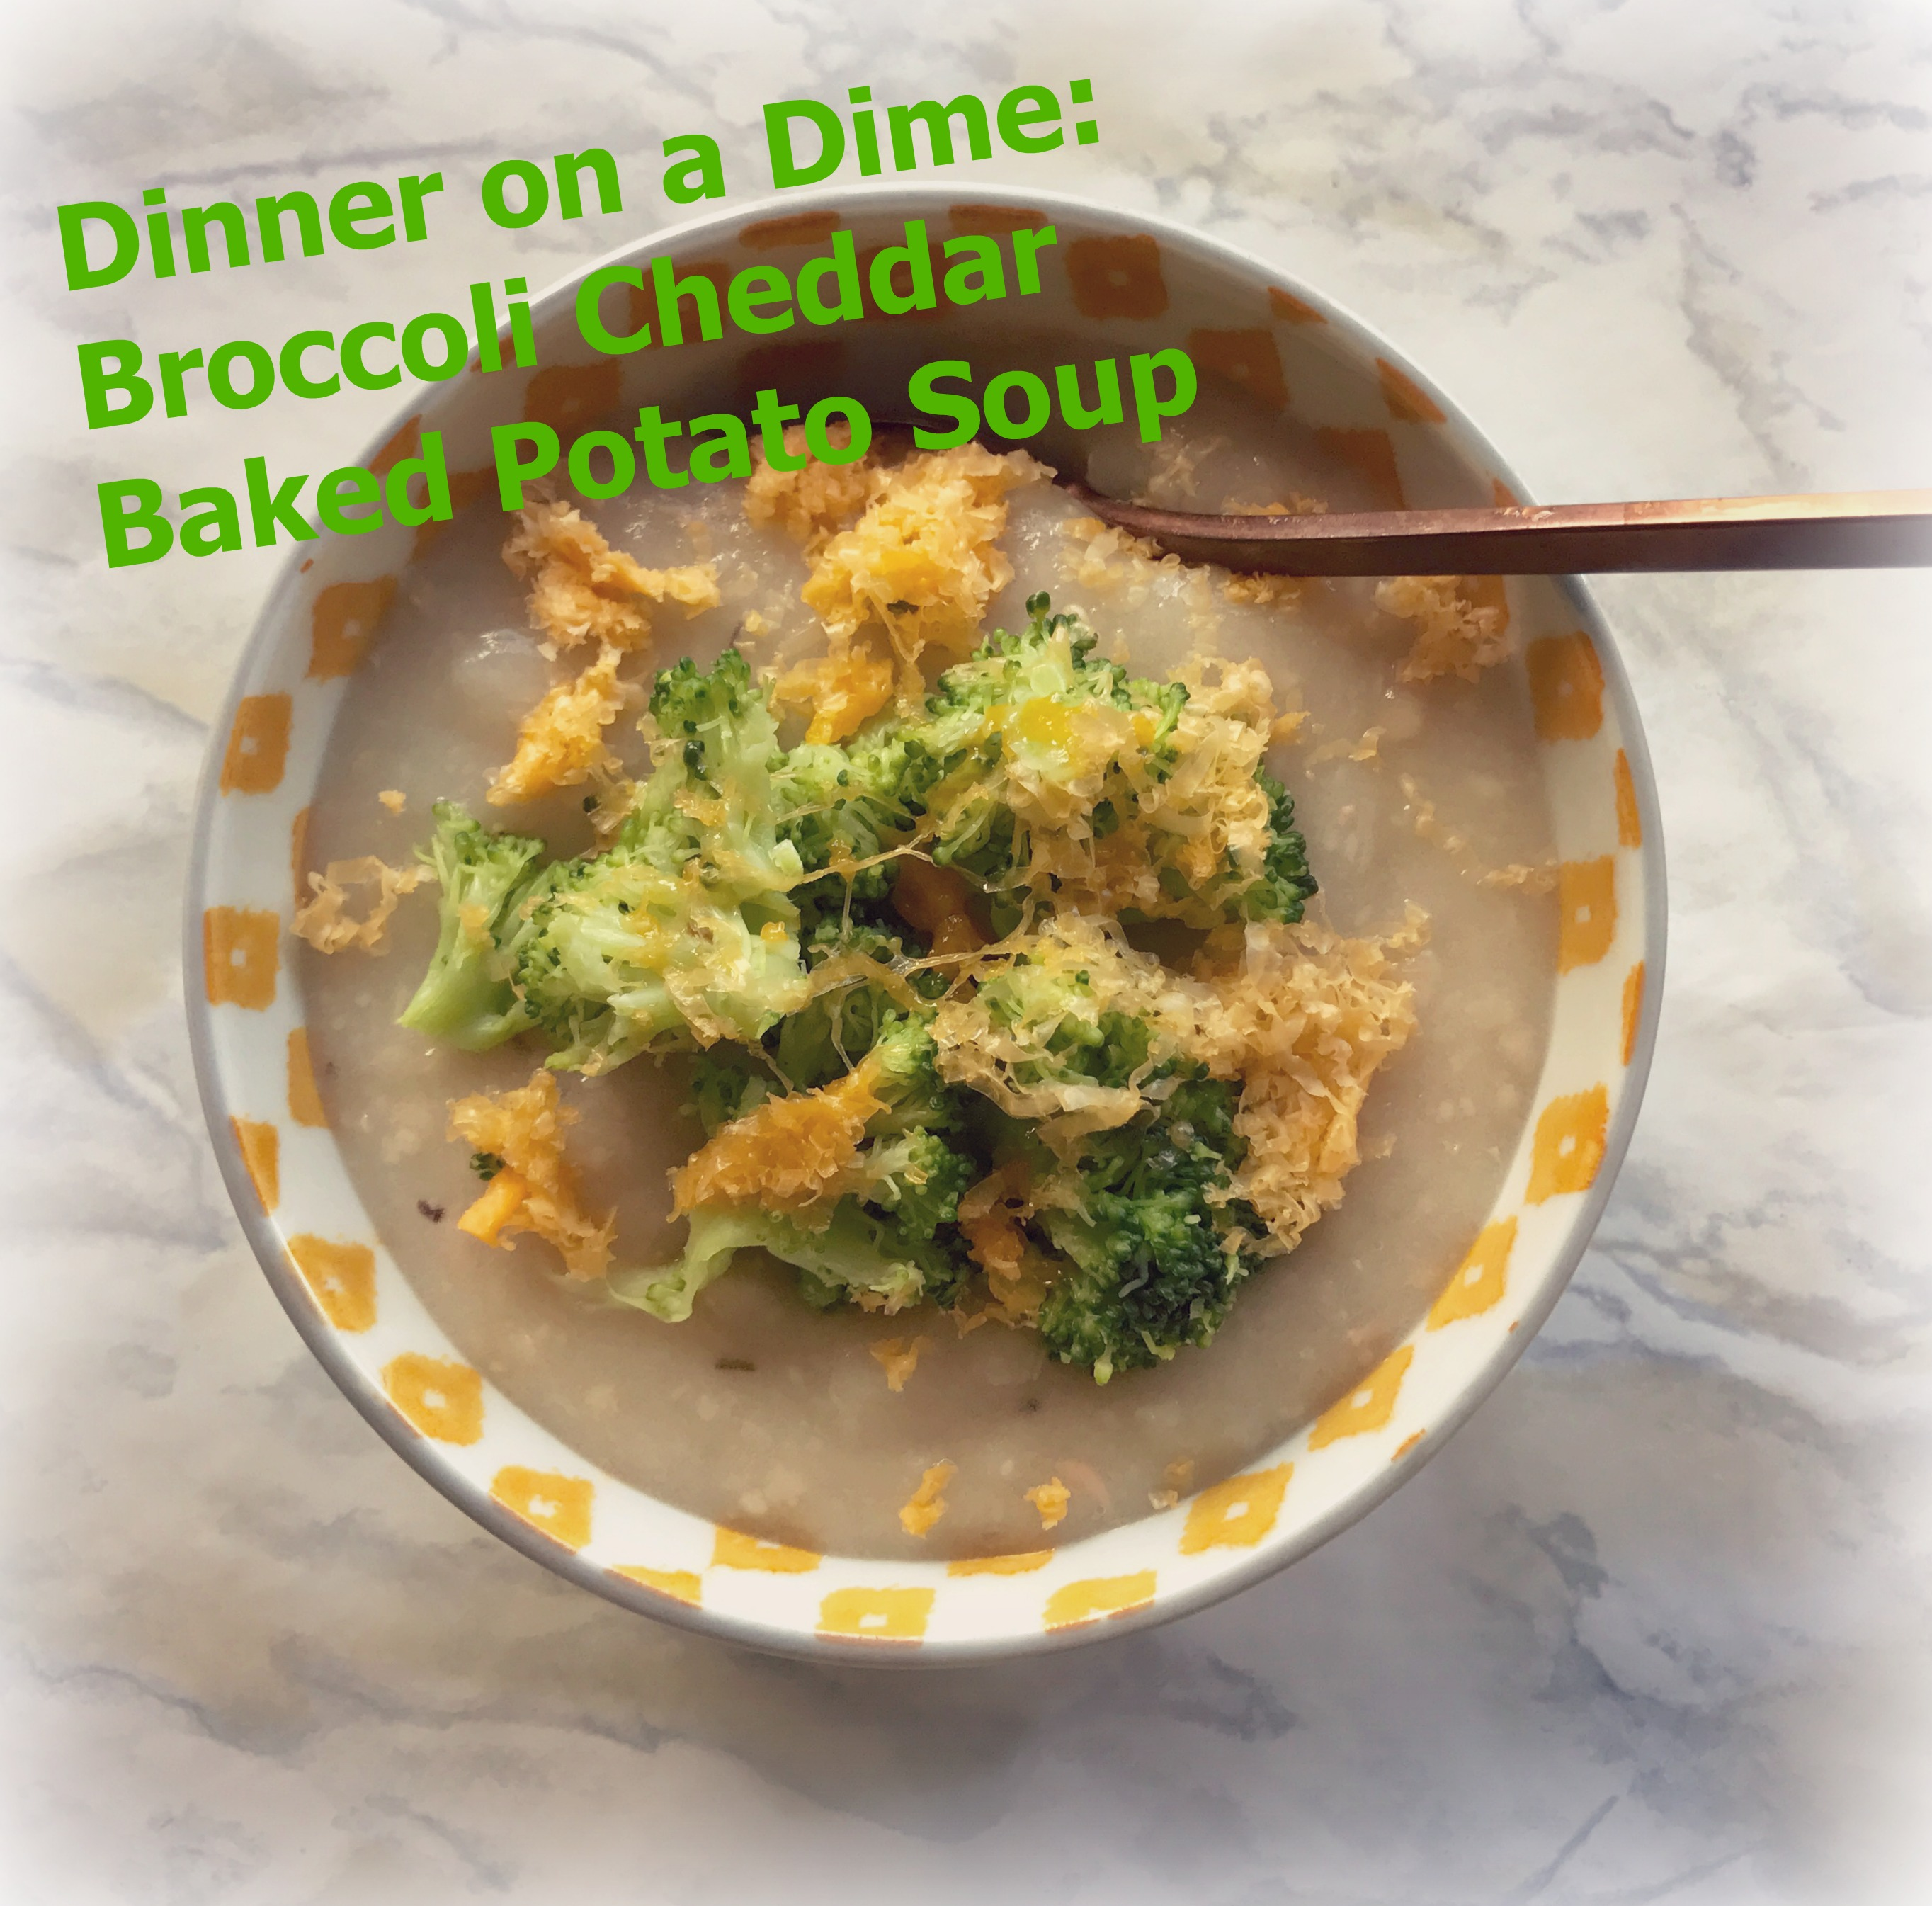 Dinner on a Dime: Broccoli Cheddar Baked Potato Soup